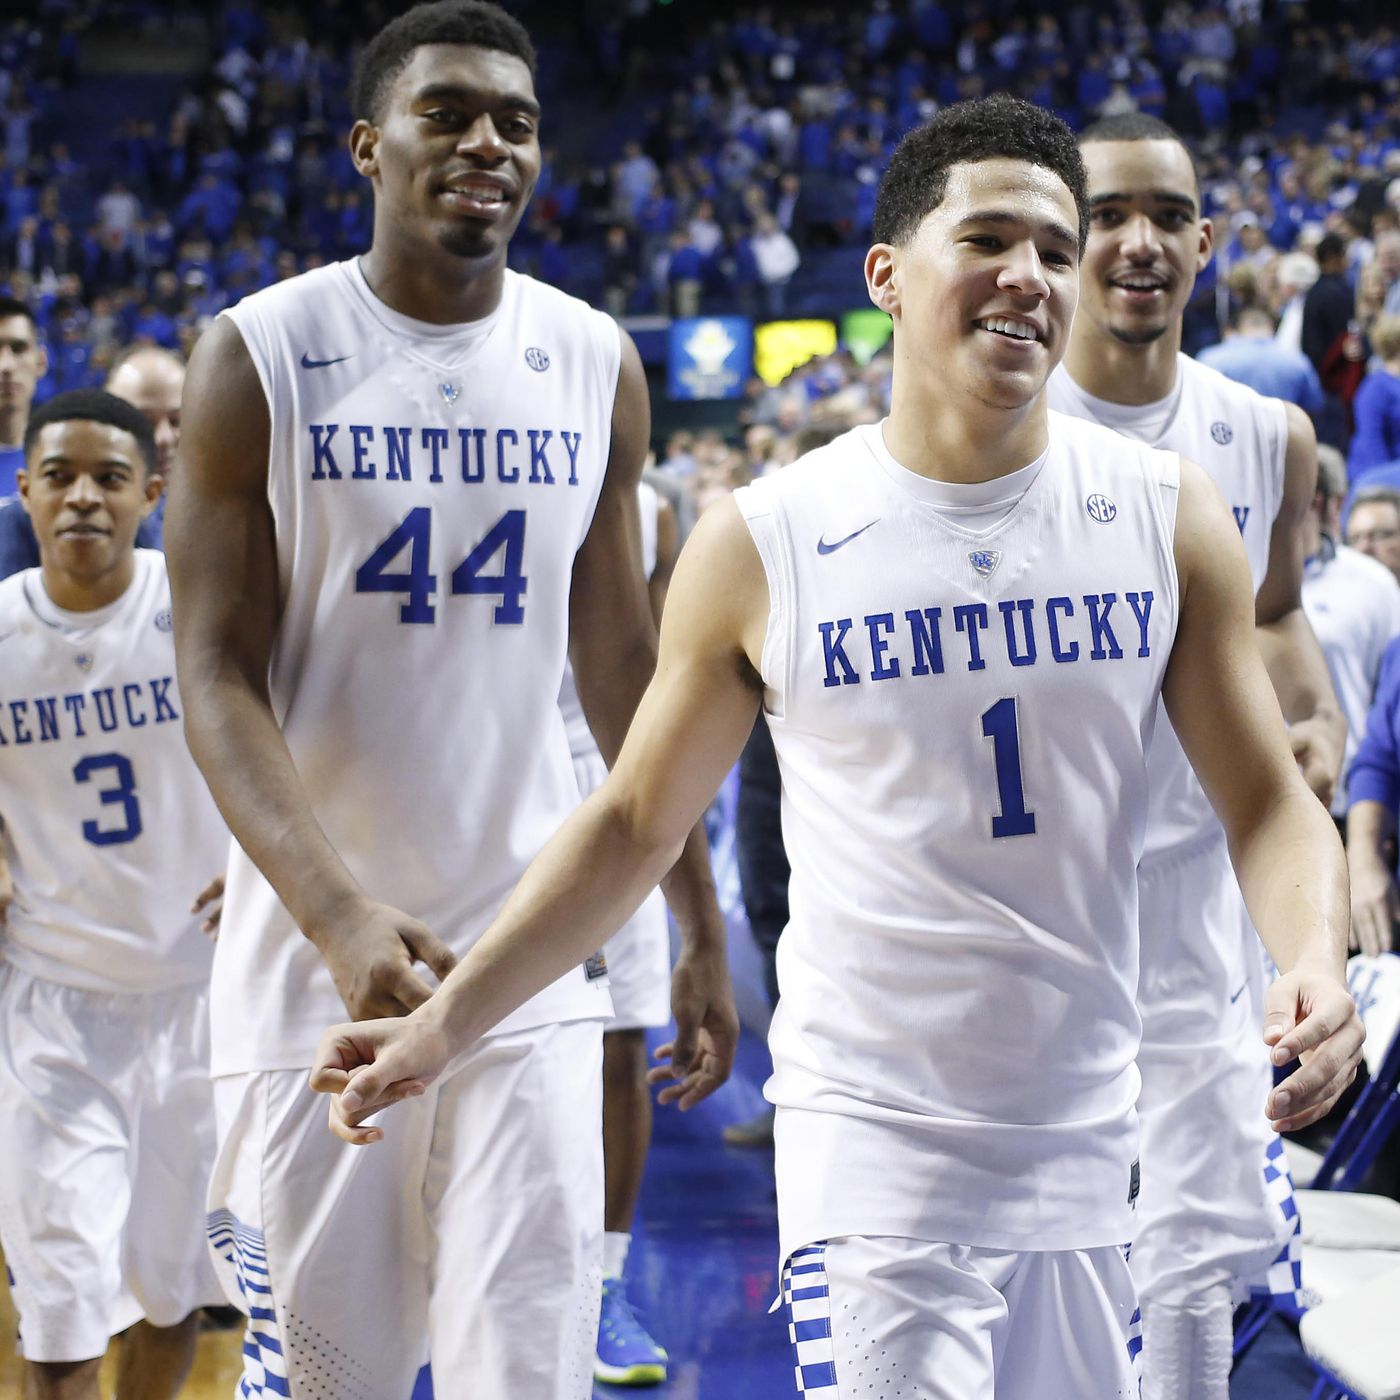 buy popular fc372 932a4 Kentucky Basketball: Ranking the best and worst jerseys of ...